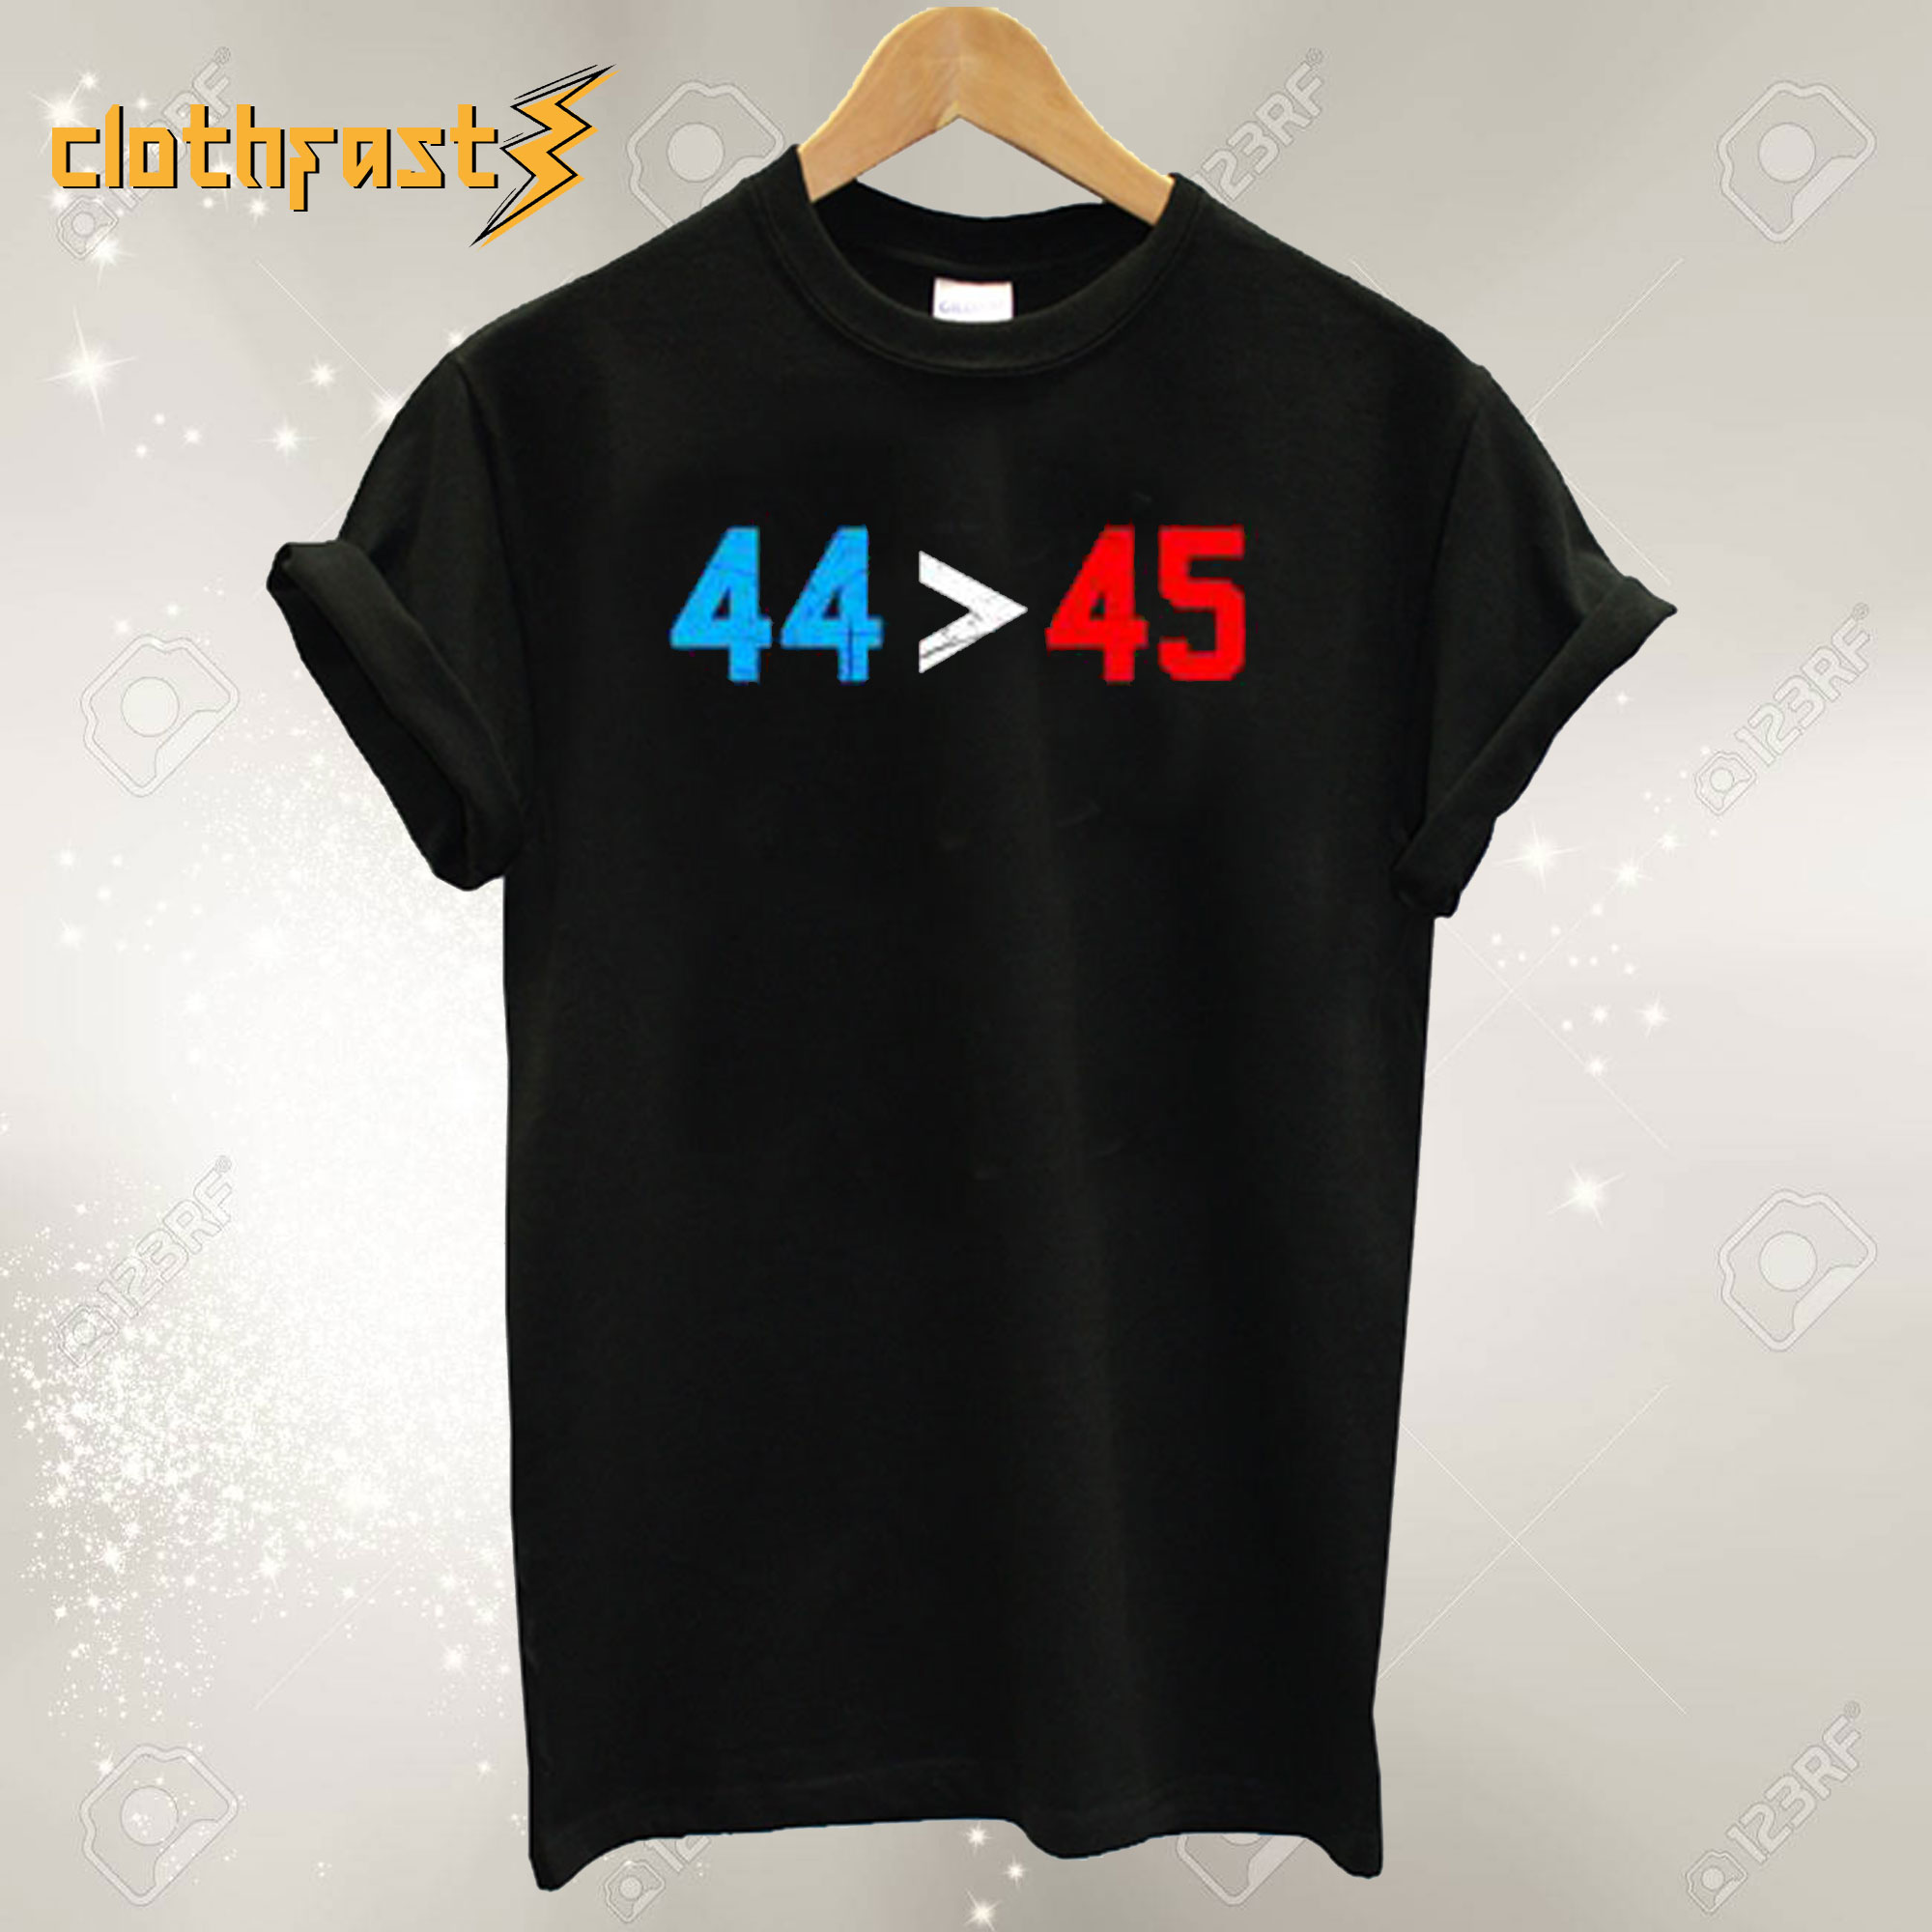 44 45 Obama Is Better Than Trump T shirt